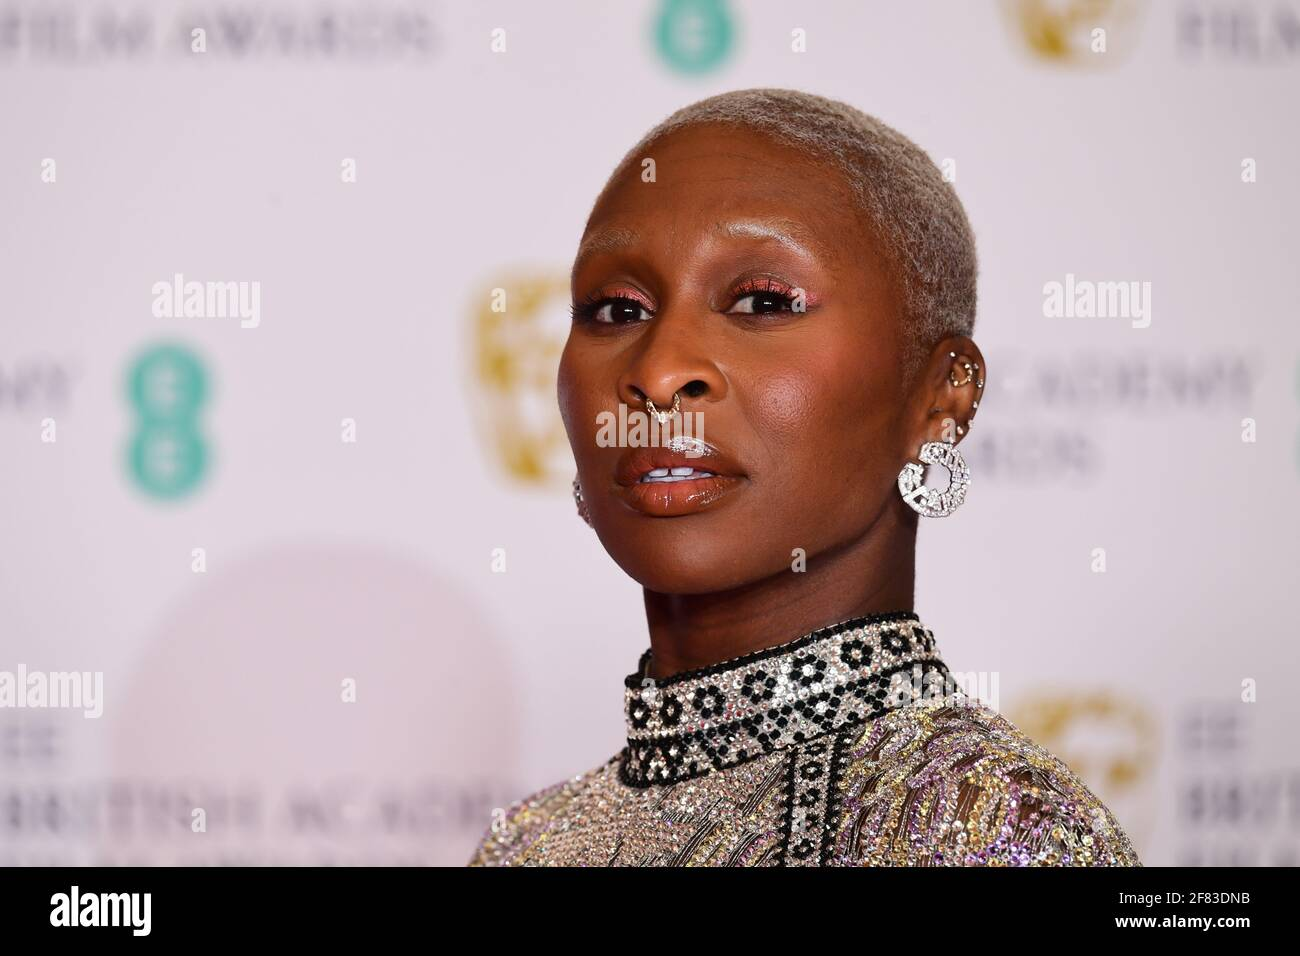 Cynthia Erivo llega a los EE BAFTA Film Awards en el Royal Albert Hall de Londres. Fecha de la foto: Domingo 11 de abril de 2021. Foto de stock